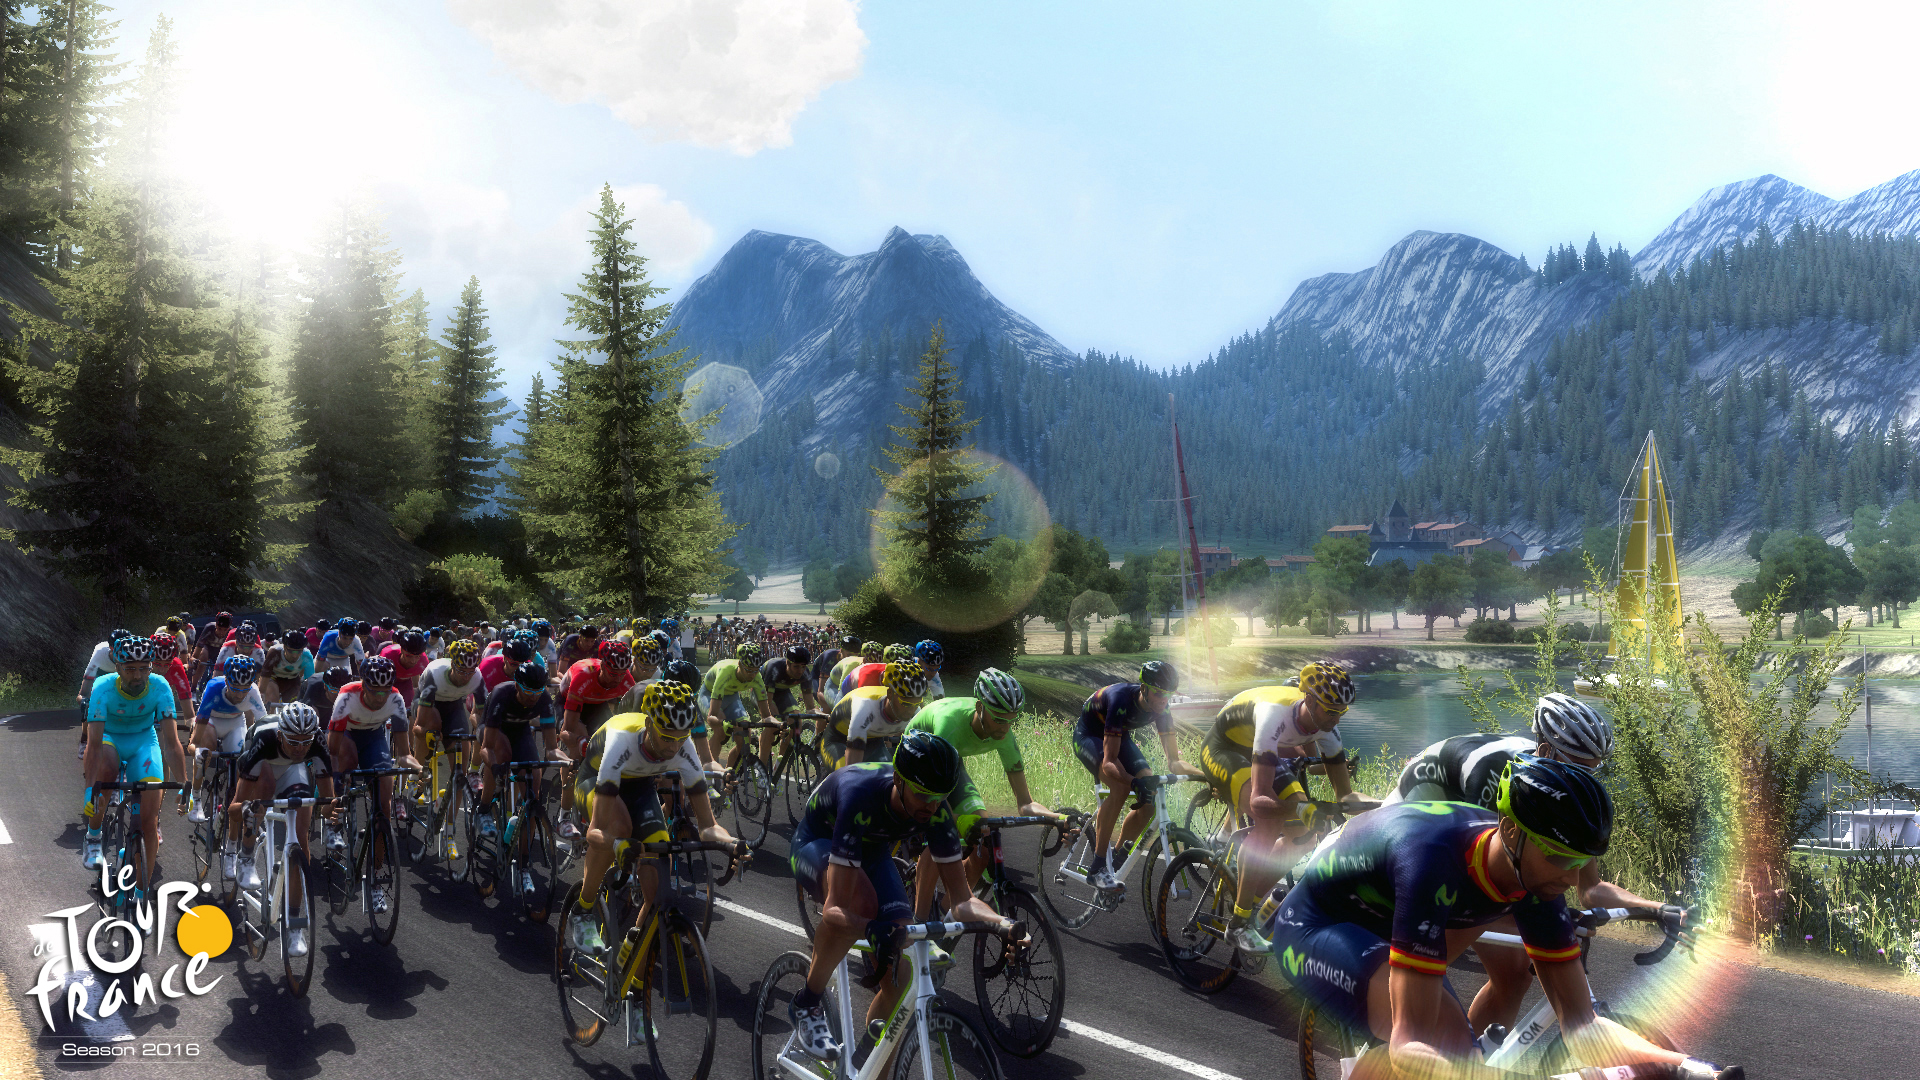 Le Tour De France 2016 Announced; First Screenshots Released